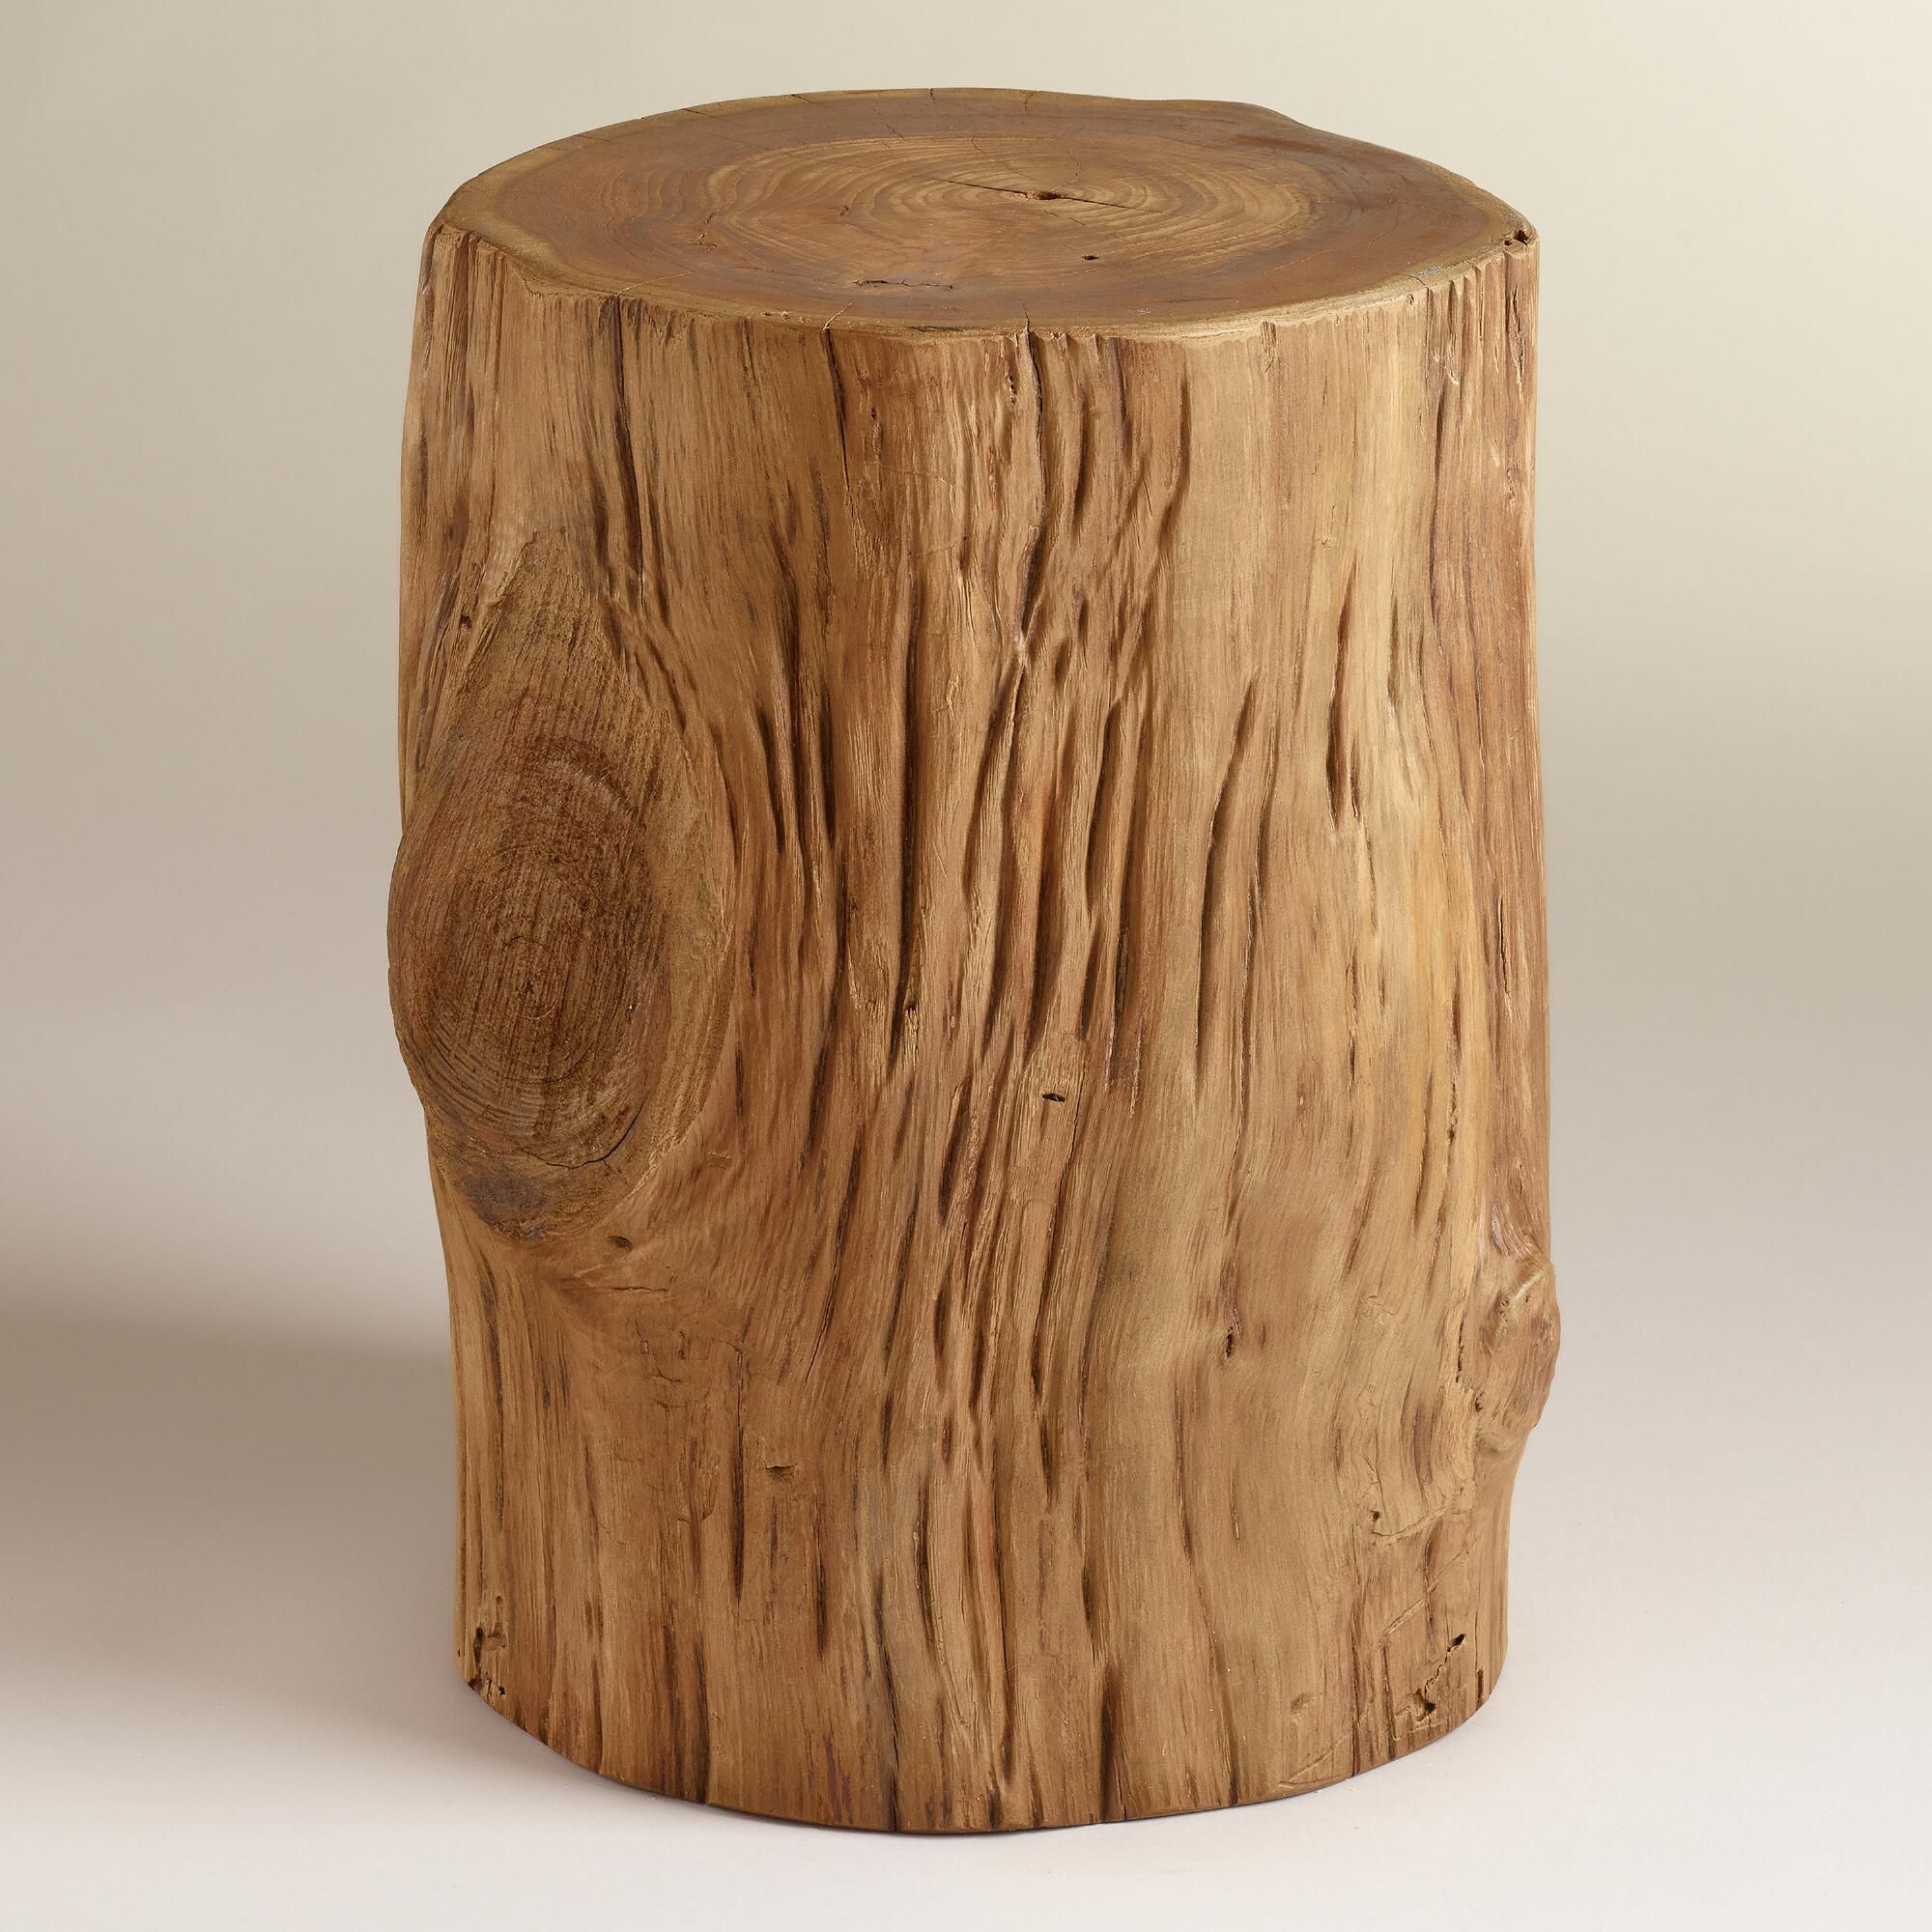 our eye catching teak tree stump table real accent trunk natural finish this wonderfully rustic piece makes exquisitely unique decorative distressed wood side living room cabinets